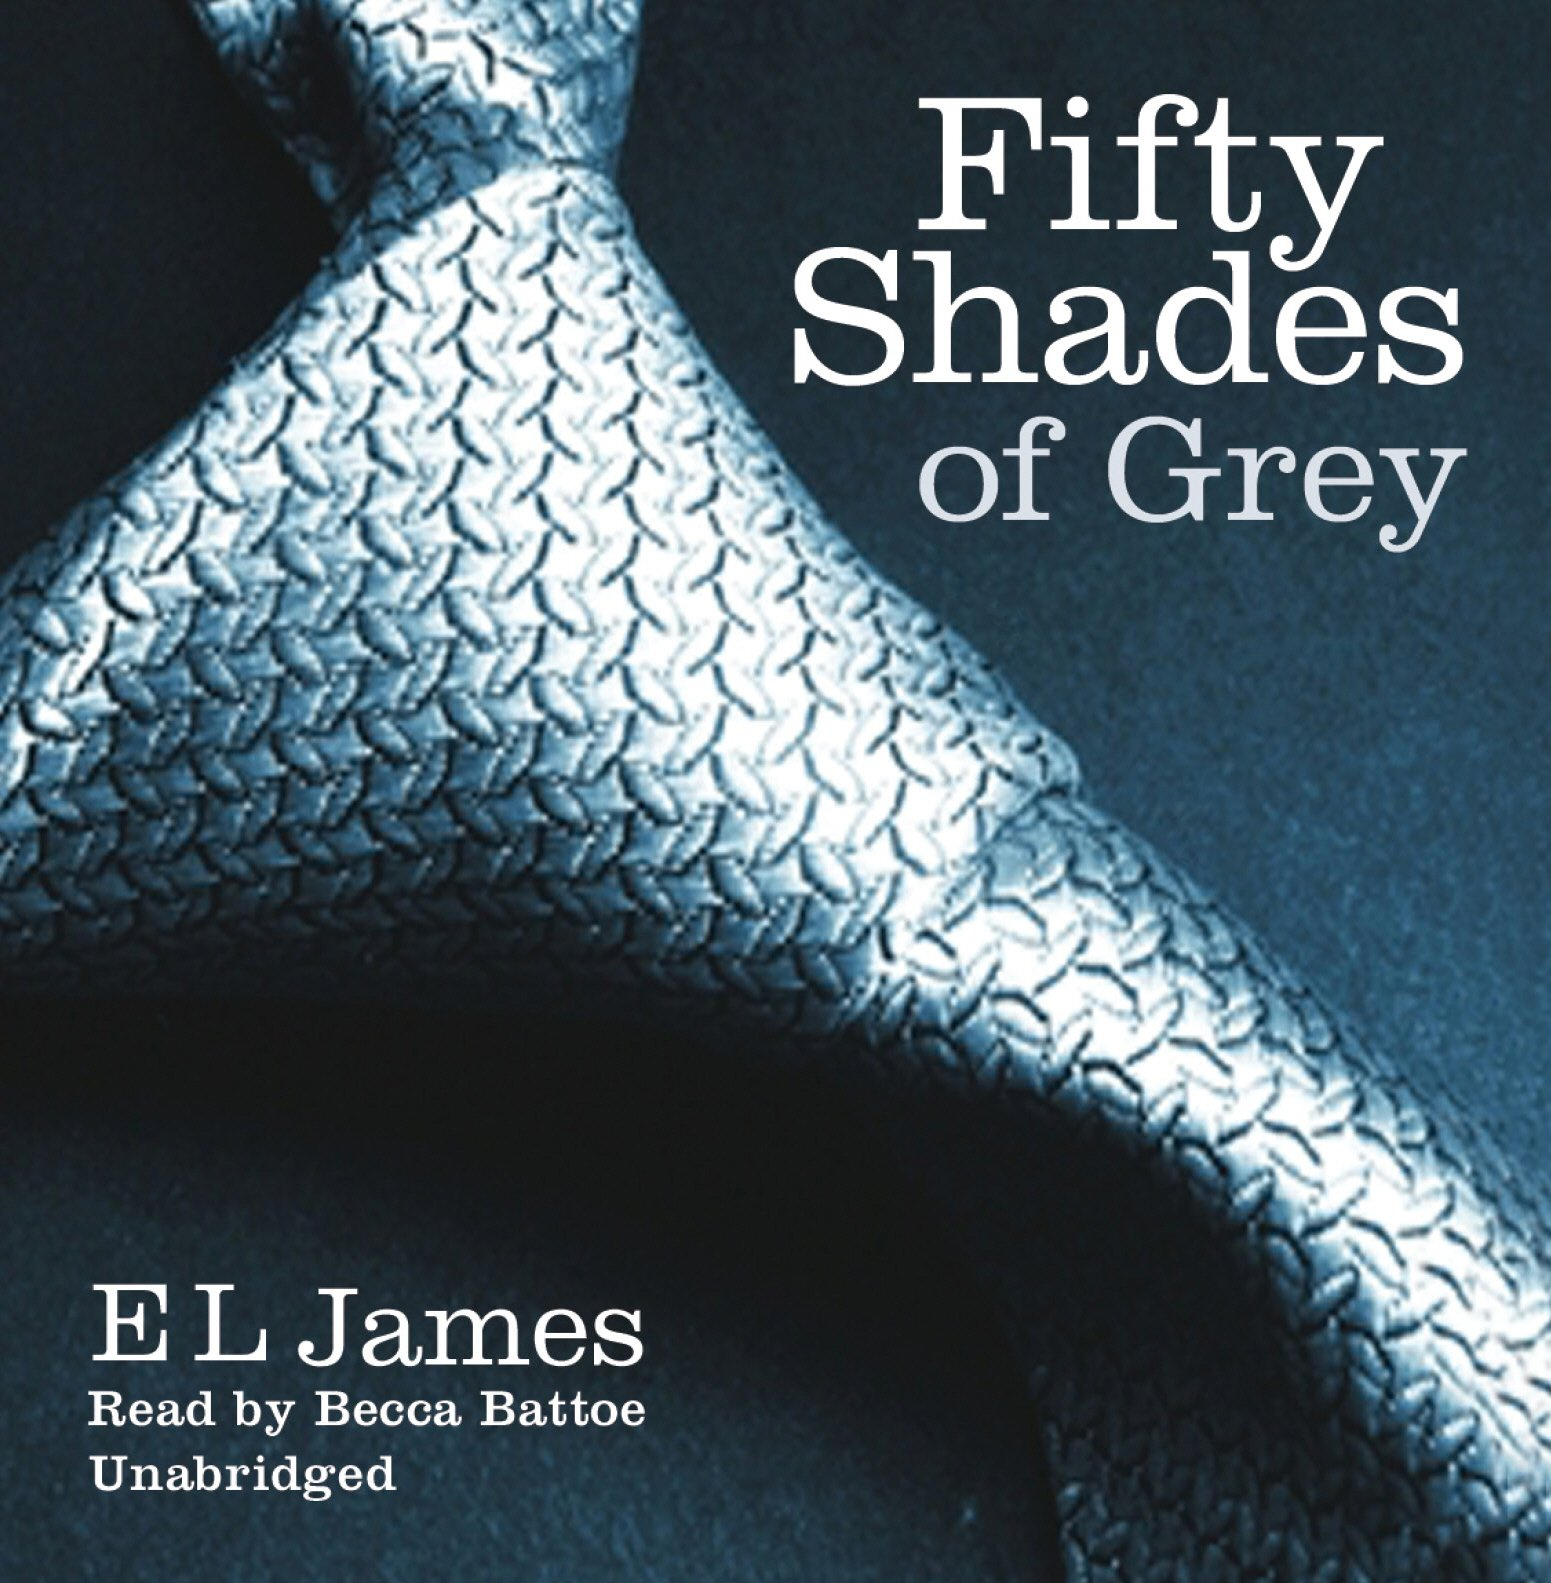 buy fifty shades of grey book one of the fifty shades trilogy  buy fifty shades of grey book one of the fifty shades trilogy fifty shades of grey series book online at low prices in fifty shades of grey book